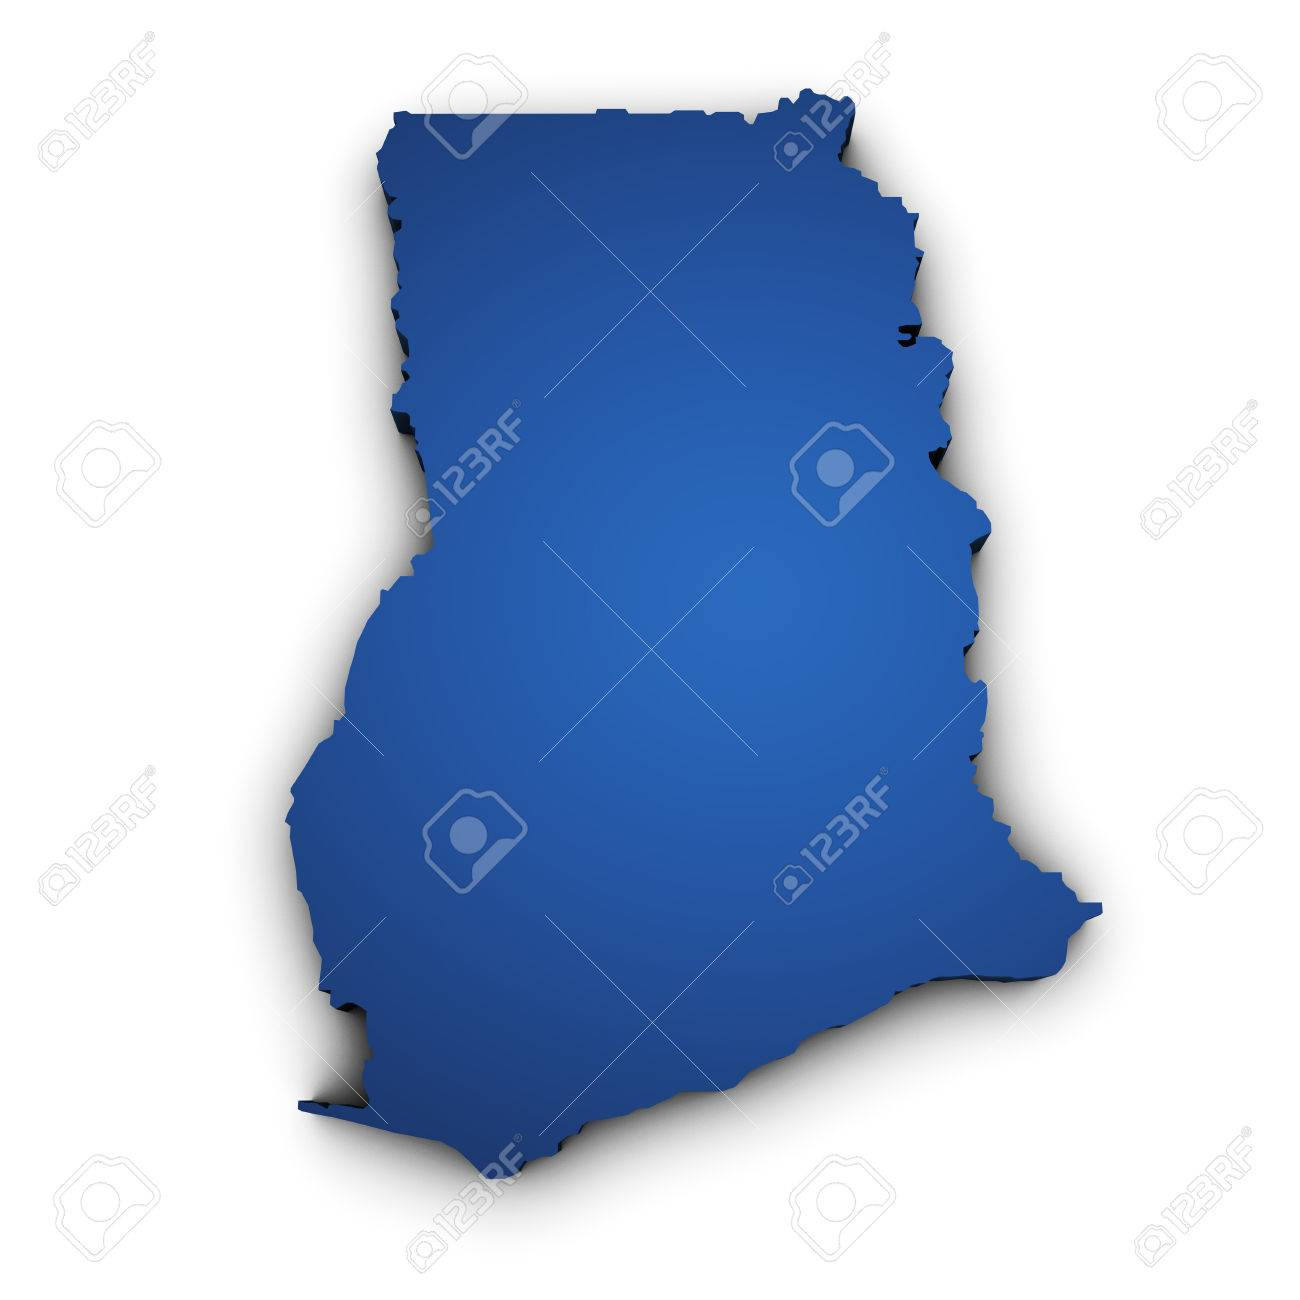 Shape D Of Ghana Map Colored In Blue And Isolated On White - Ghana map